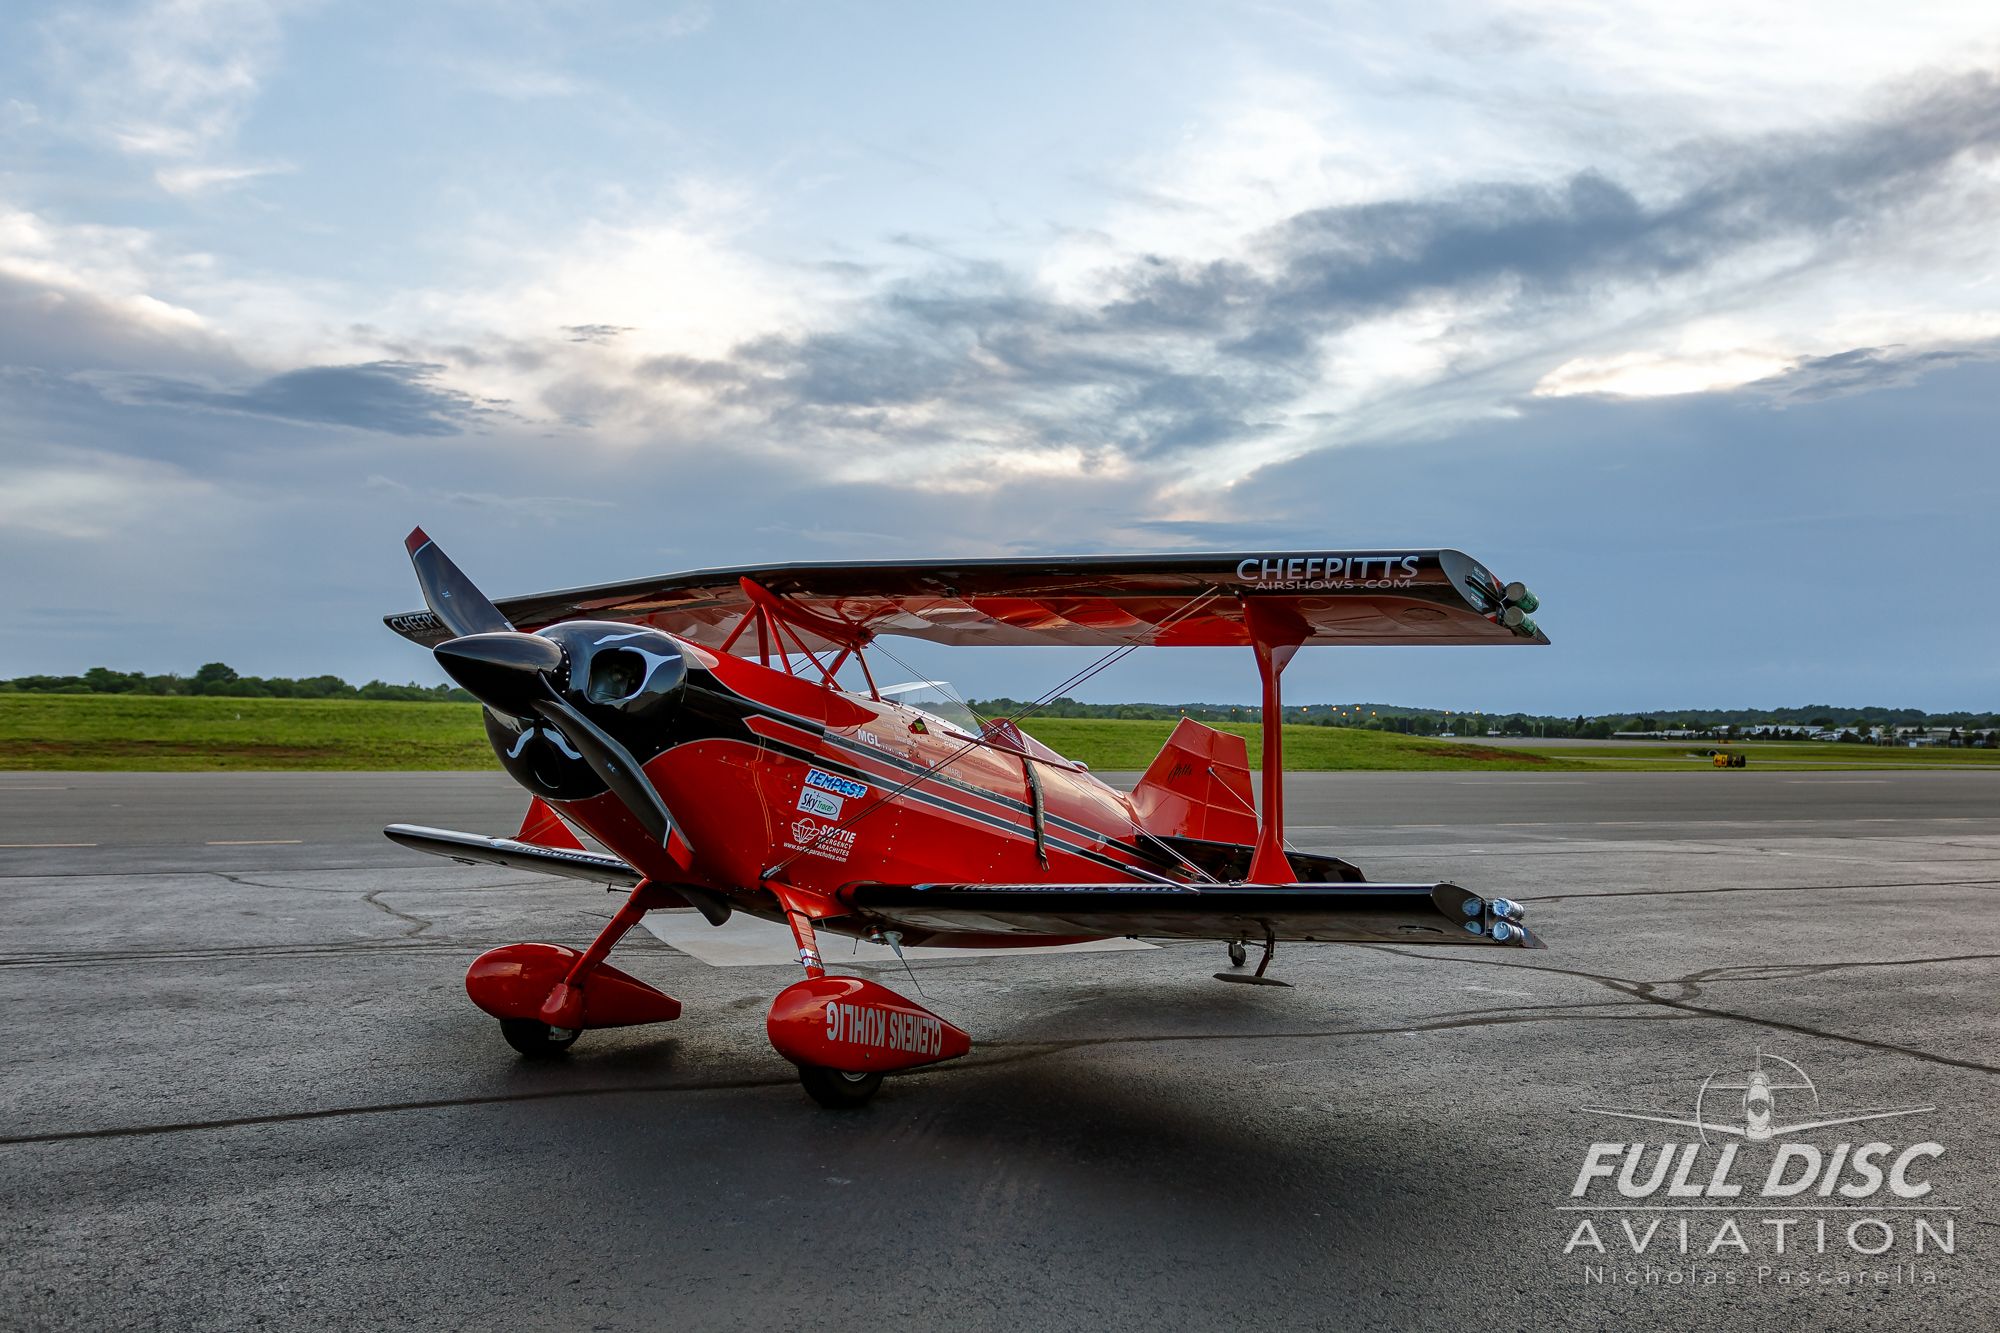 chefpitts_nickpascarella_fulldiscaviation_sunset_frontquarter.jpg